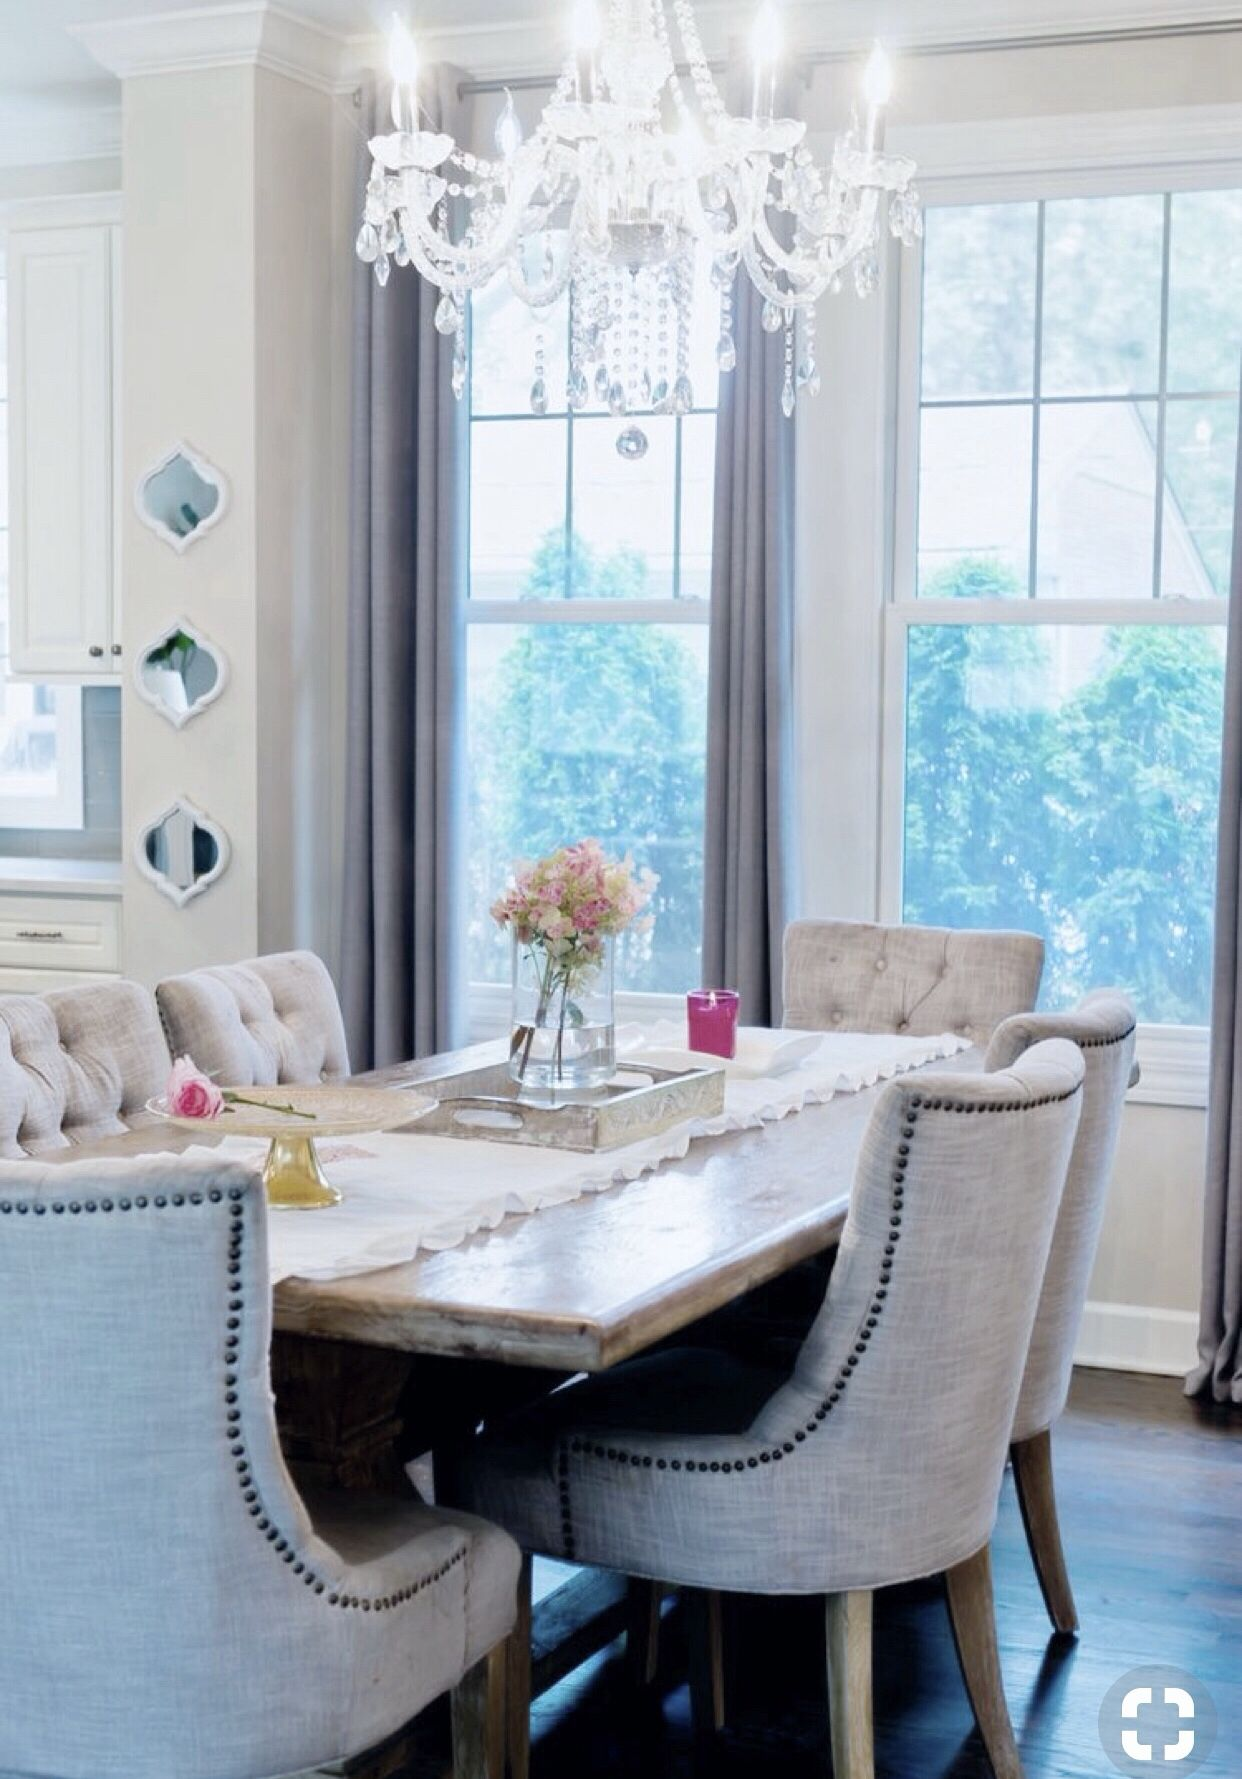 Rustic Glam Dining Room Decor Ideas White And Grey Decor